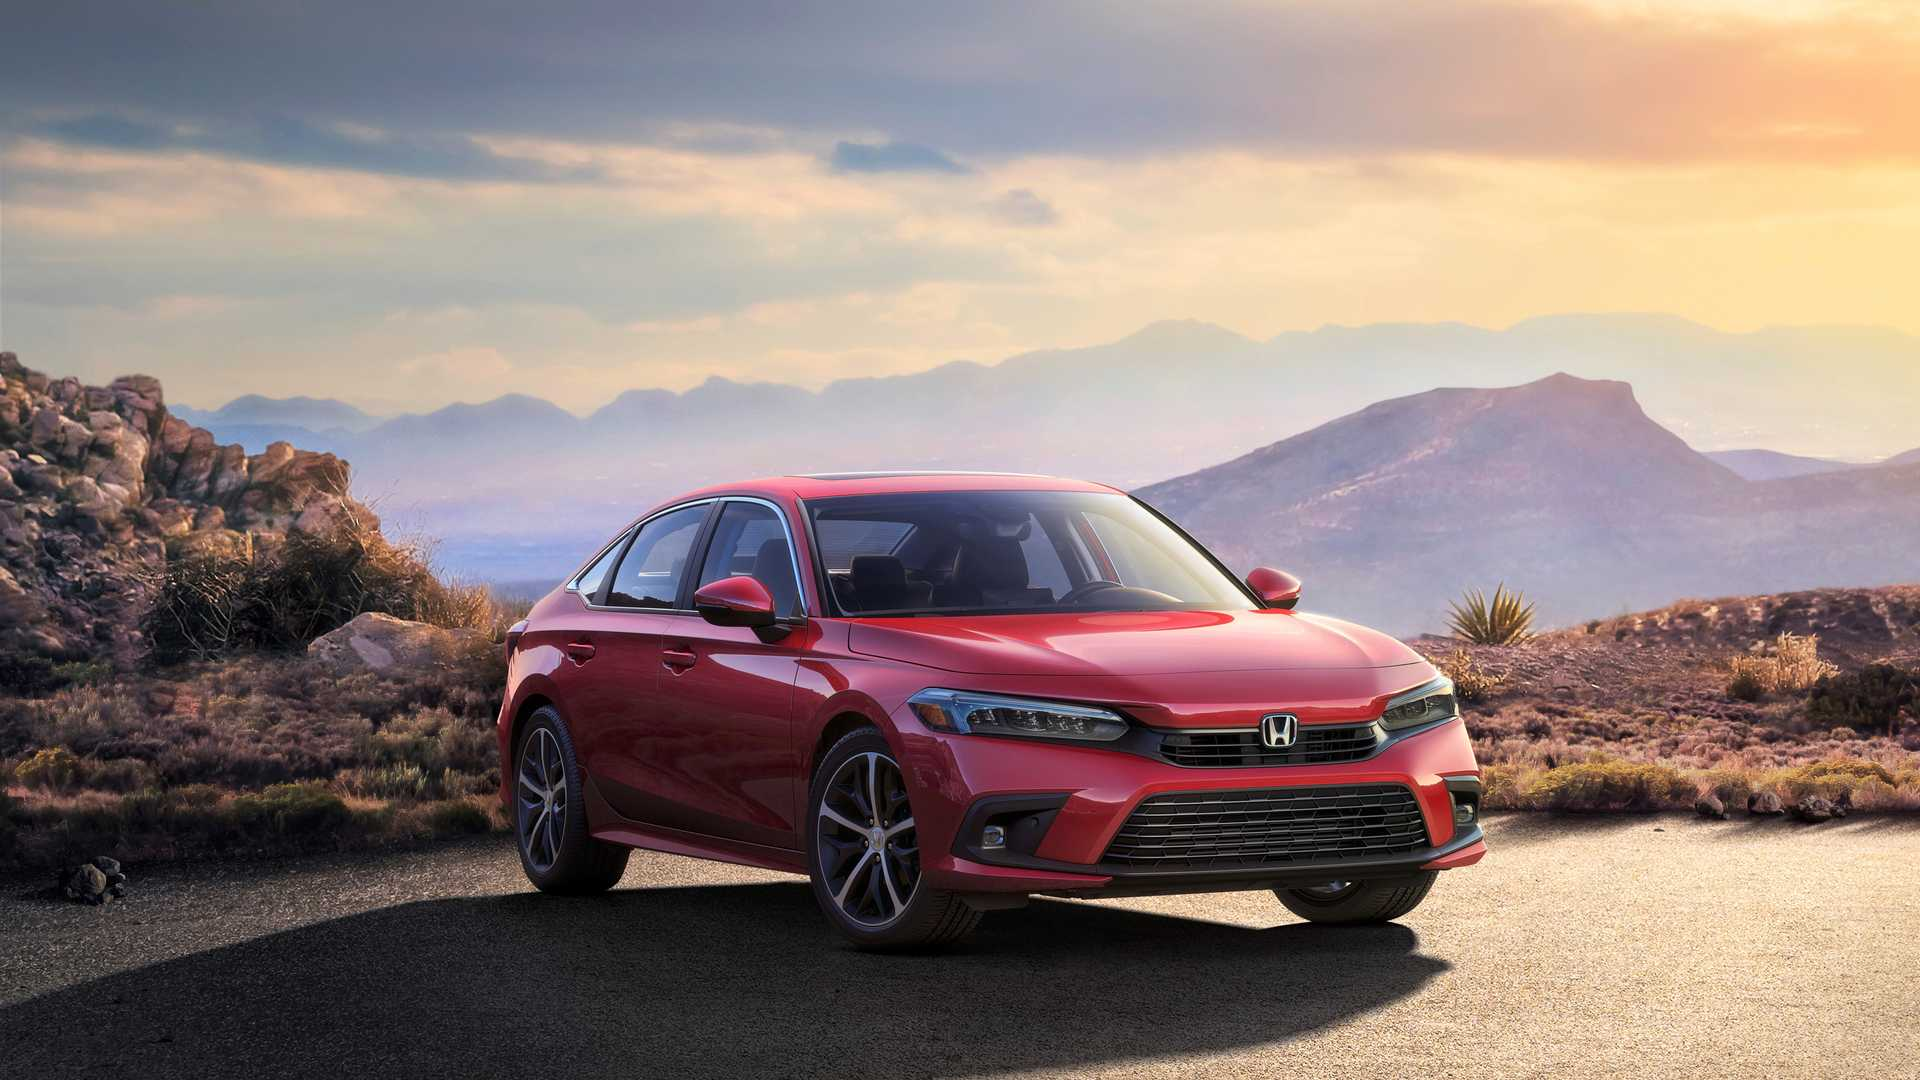 Following the first pic of the Honda Civic Exterior posted a few weeks ago, the company decided to dispense with the rest of the mystery and announce the model properly.